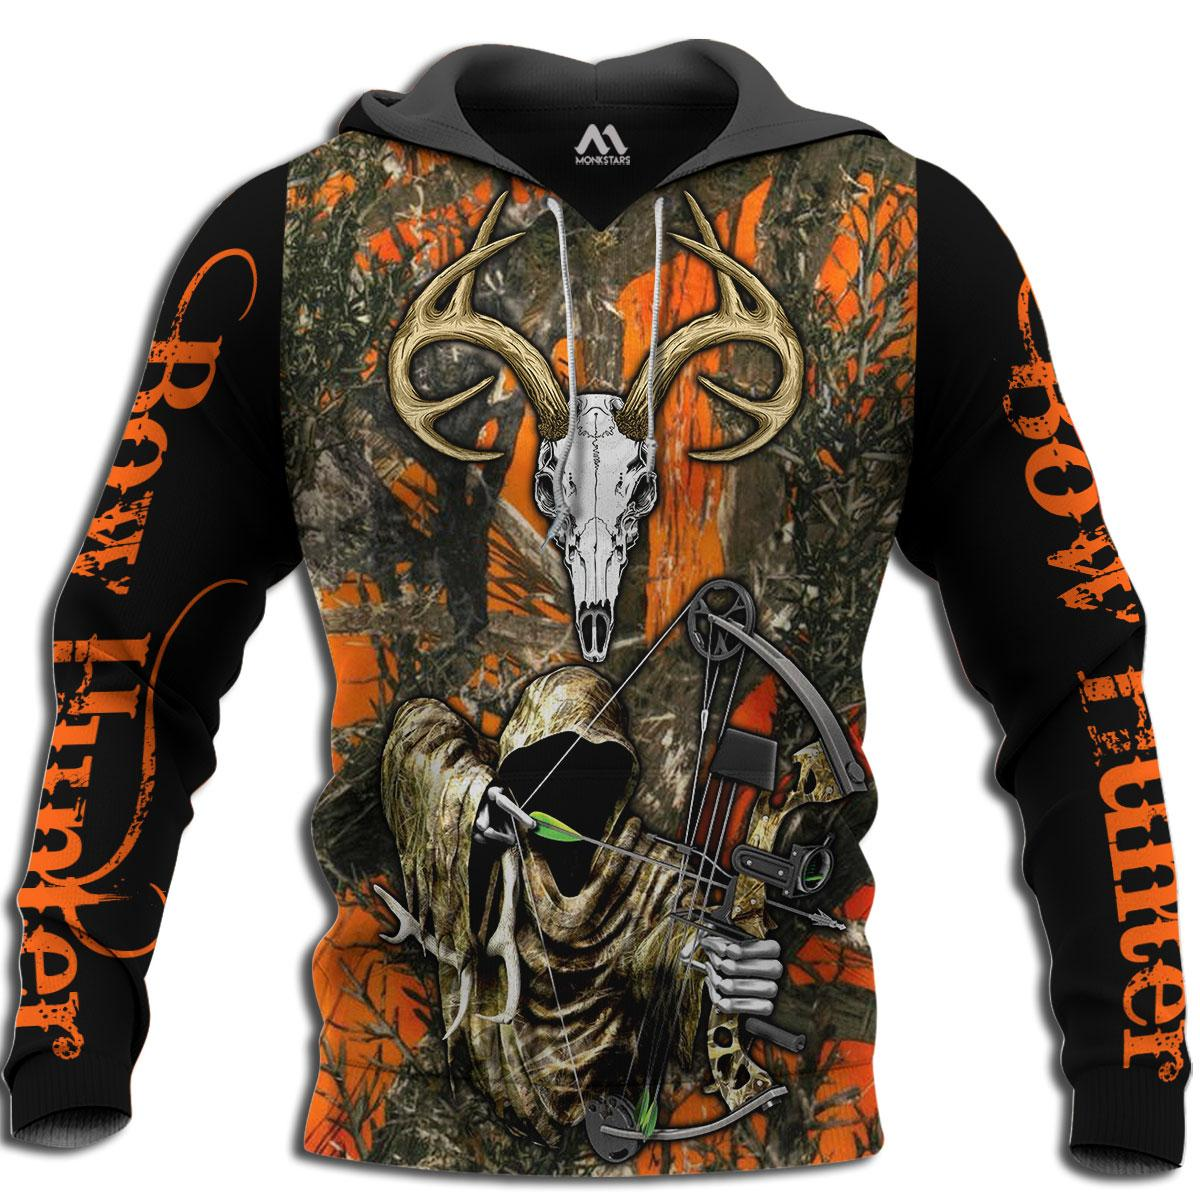 Grim reaper bow hunter camo 3d all over printed hoodie - maria